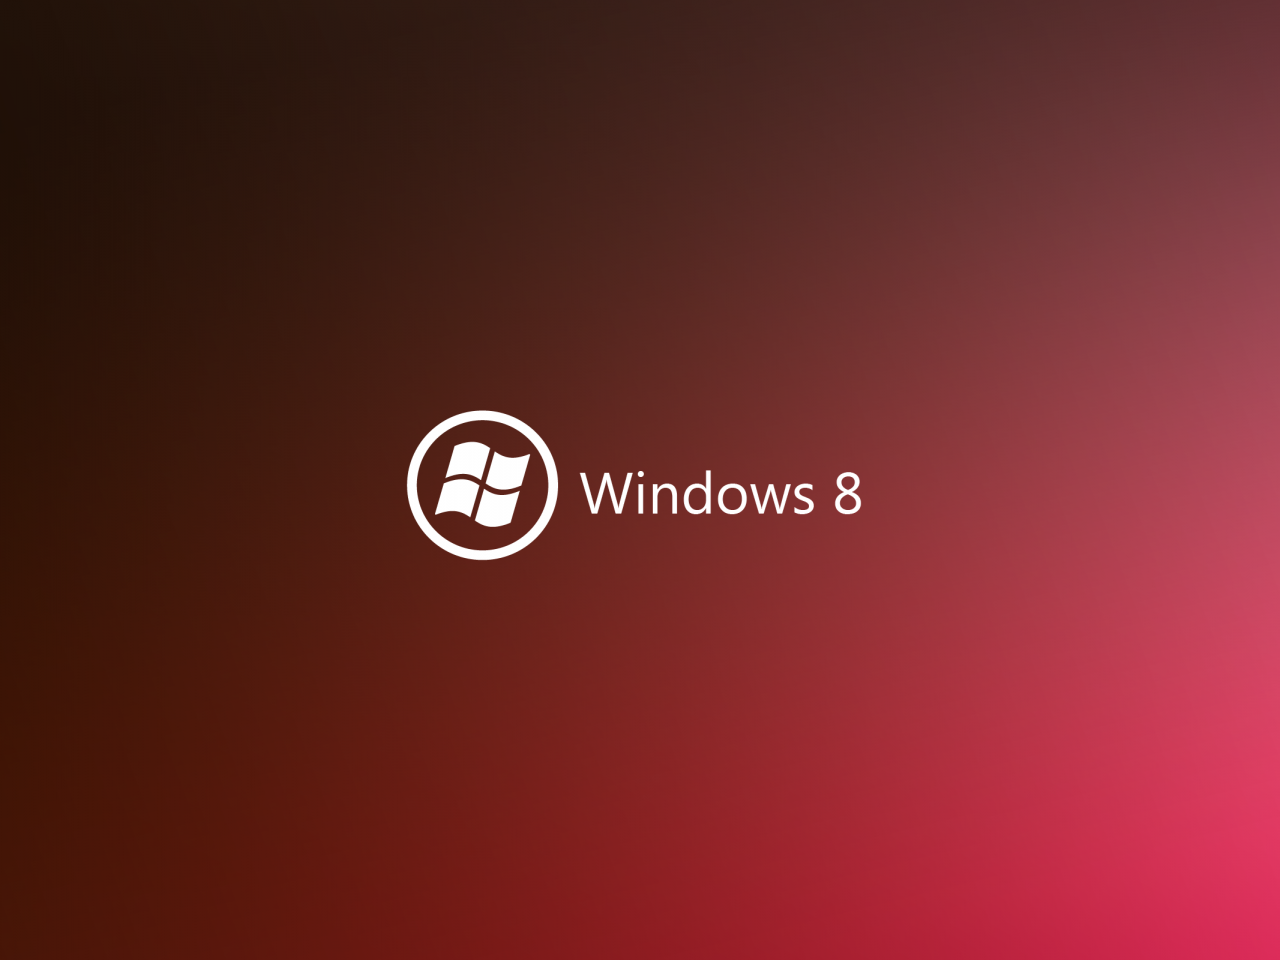 Windows 8 Text Hd Wallpapers